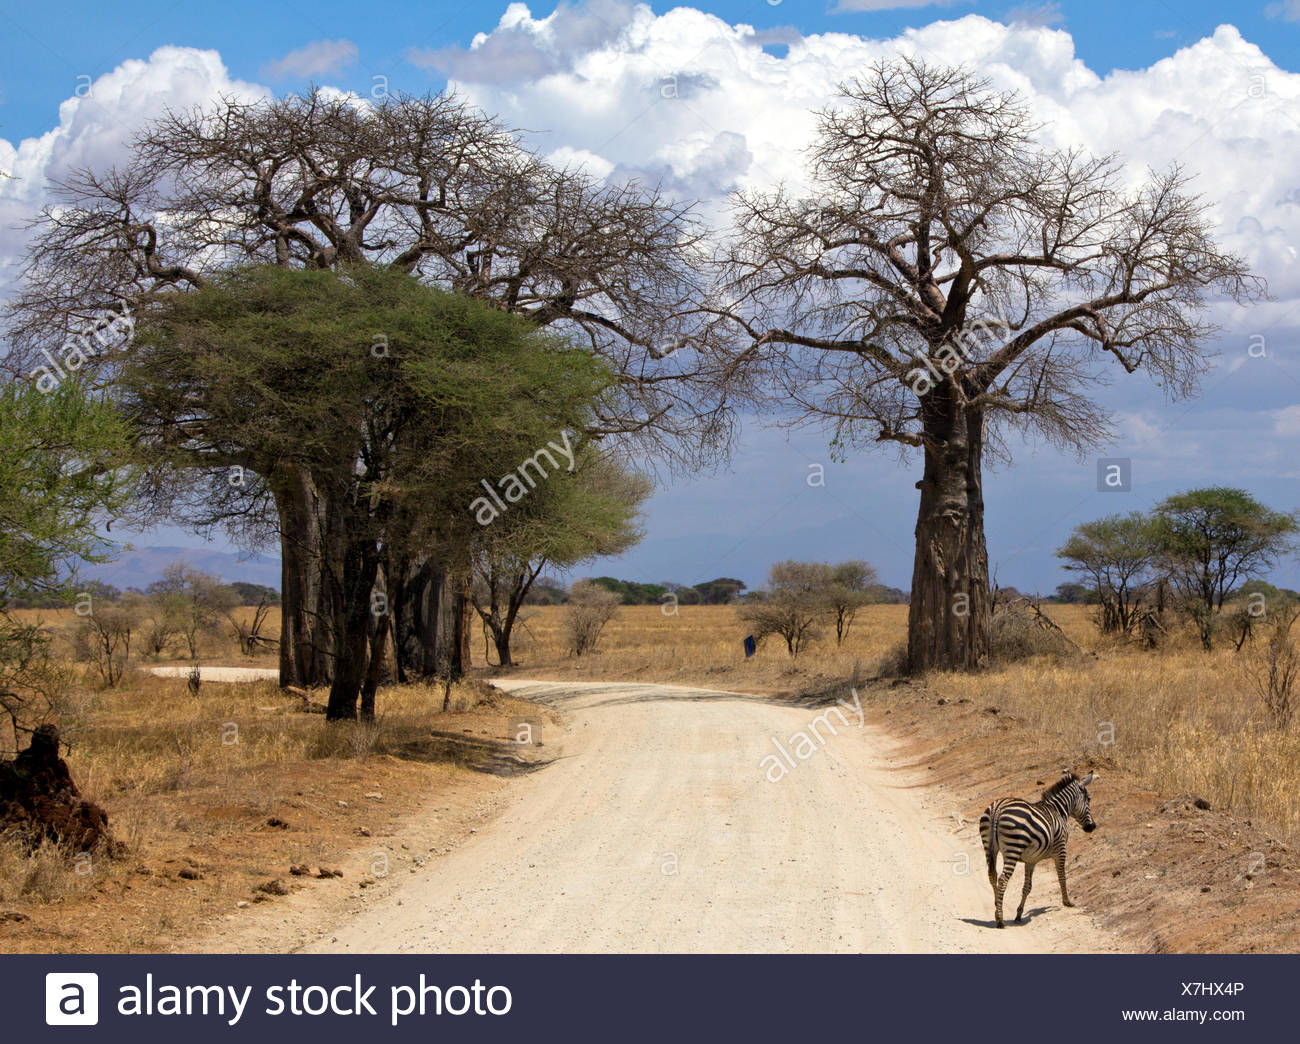 Zebra crossing road, Tarangire National Park, Manyara,  Tanzania Stock Photo